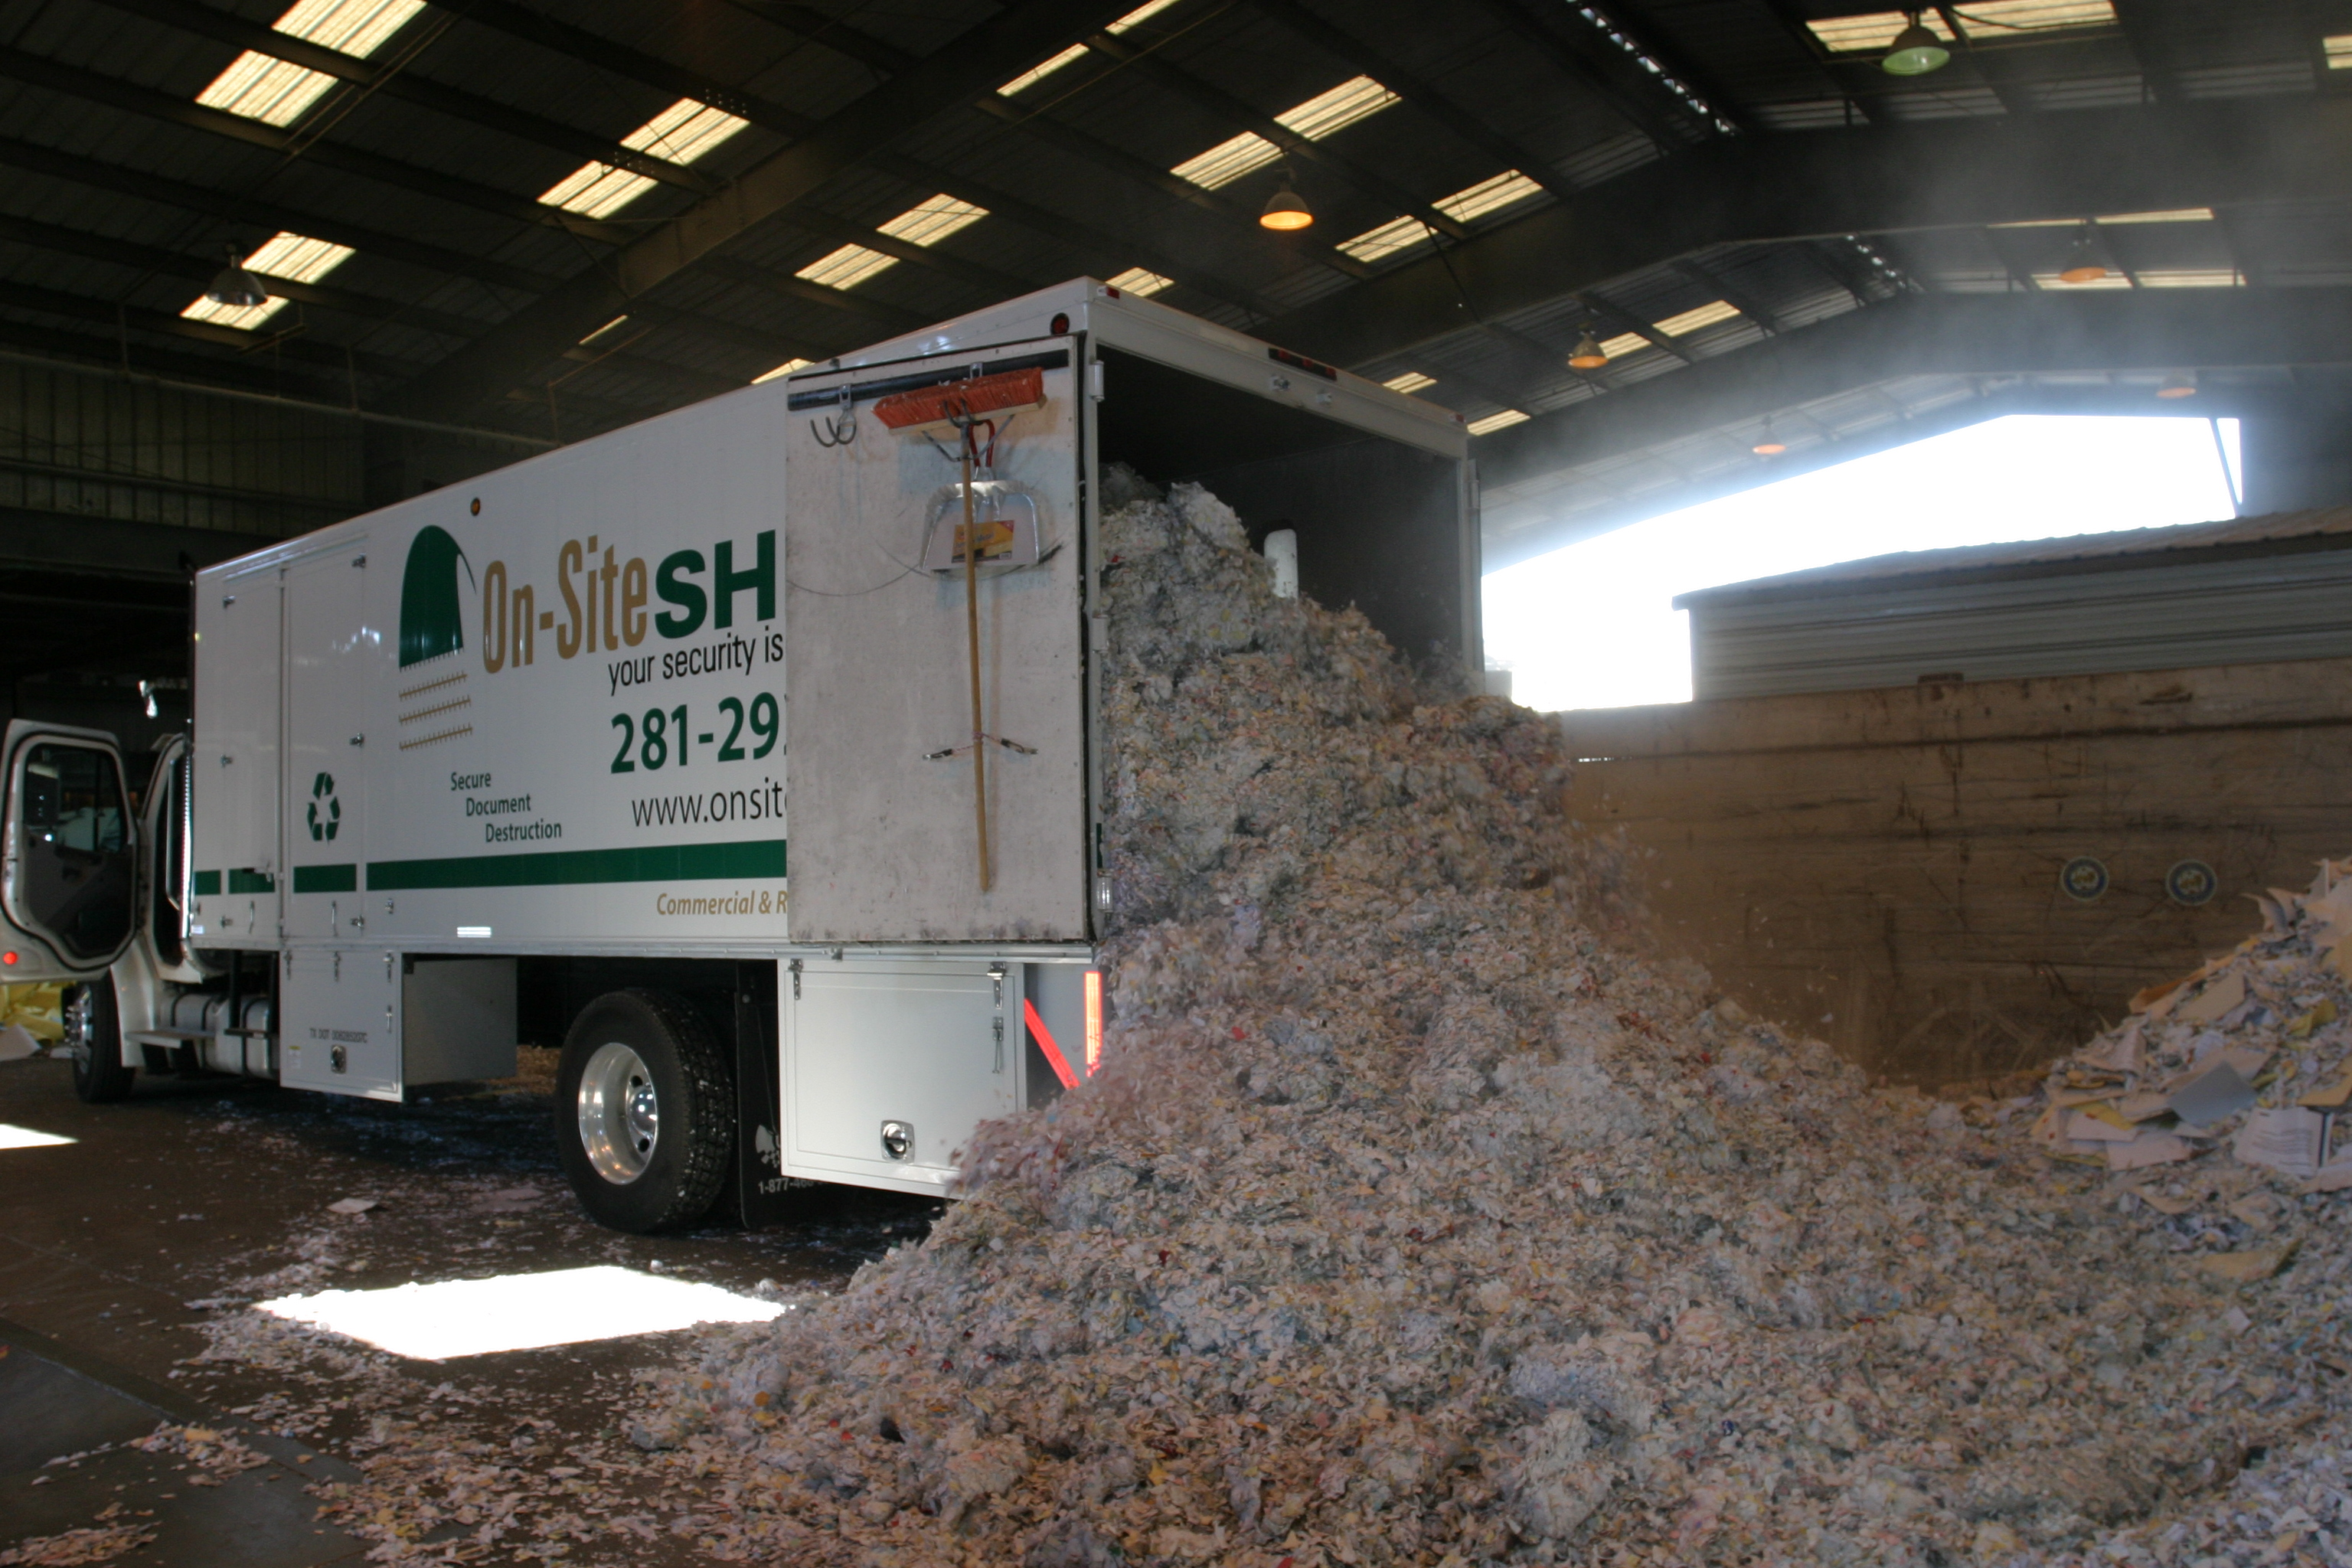 Mobile paper shredding business plan